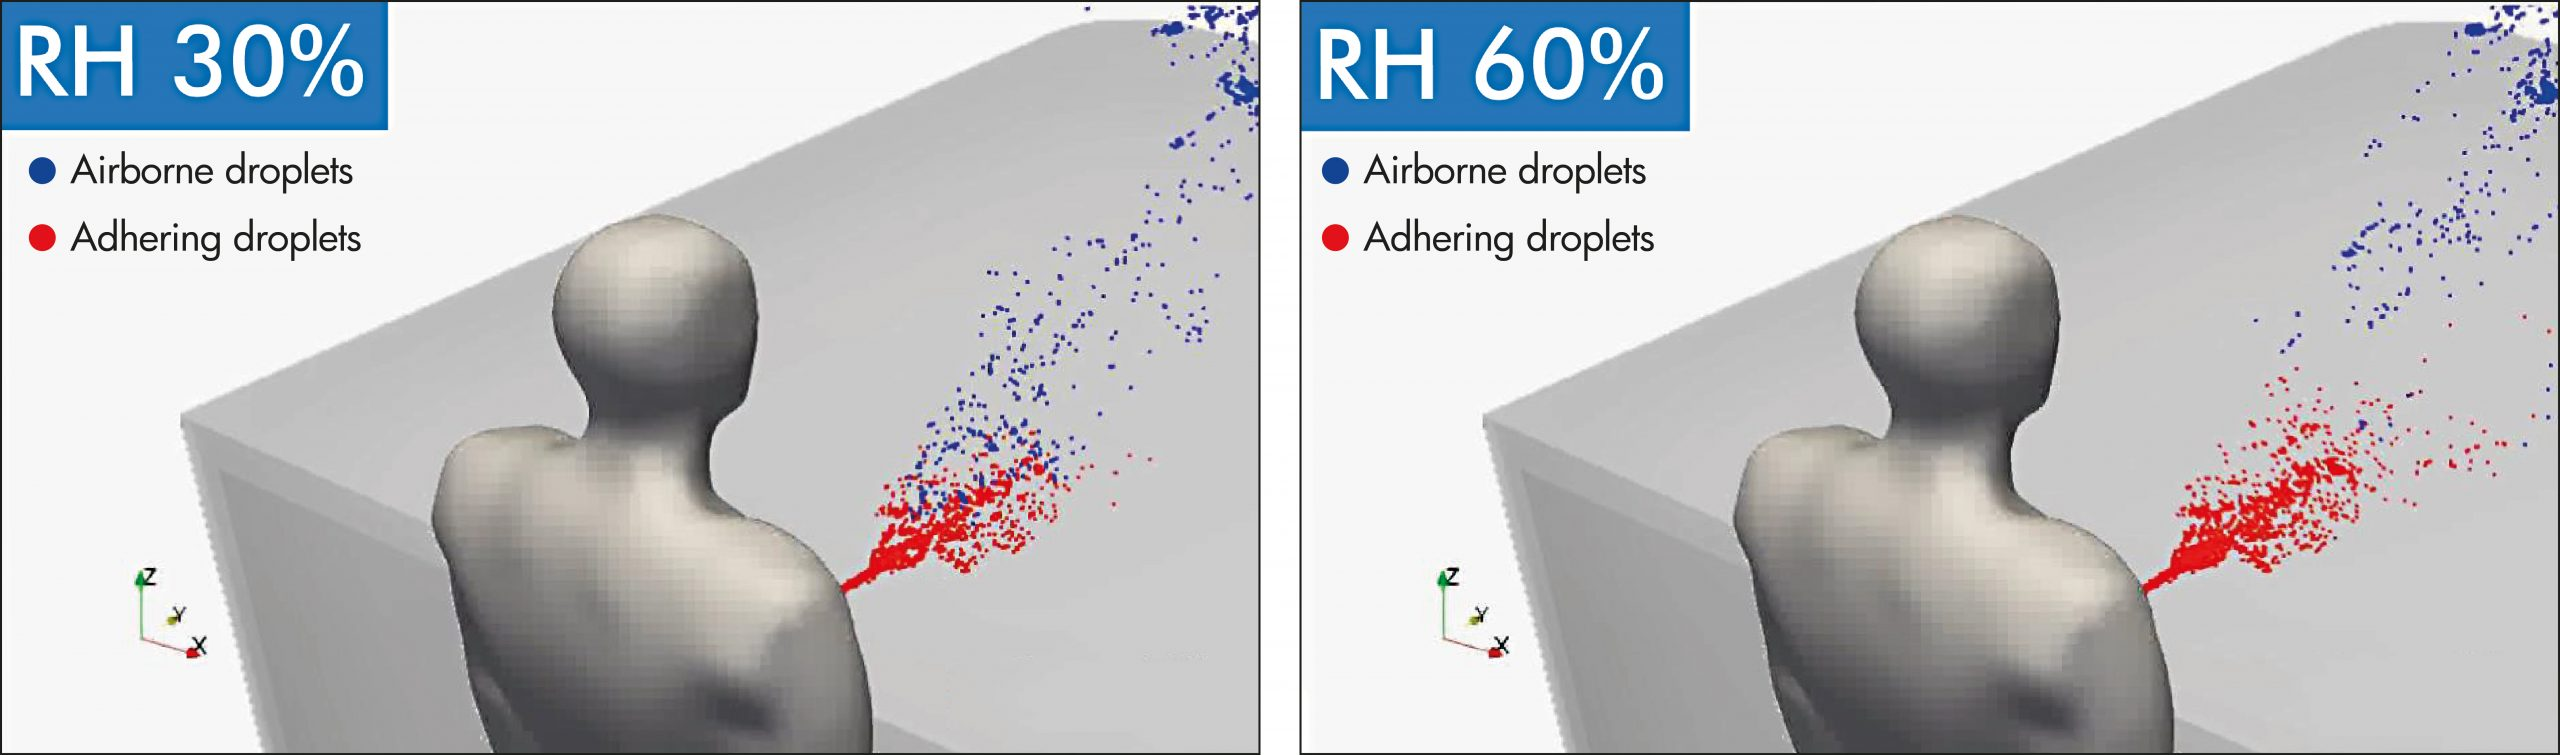 VERIFICATION OF AIRBORNE DROPLET PARTICLE DEPENDENCE ON HUMIDITY